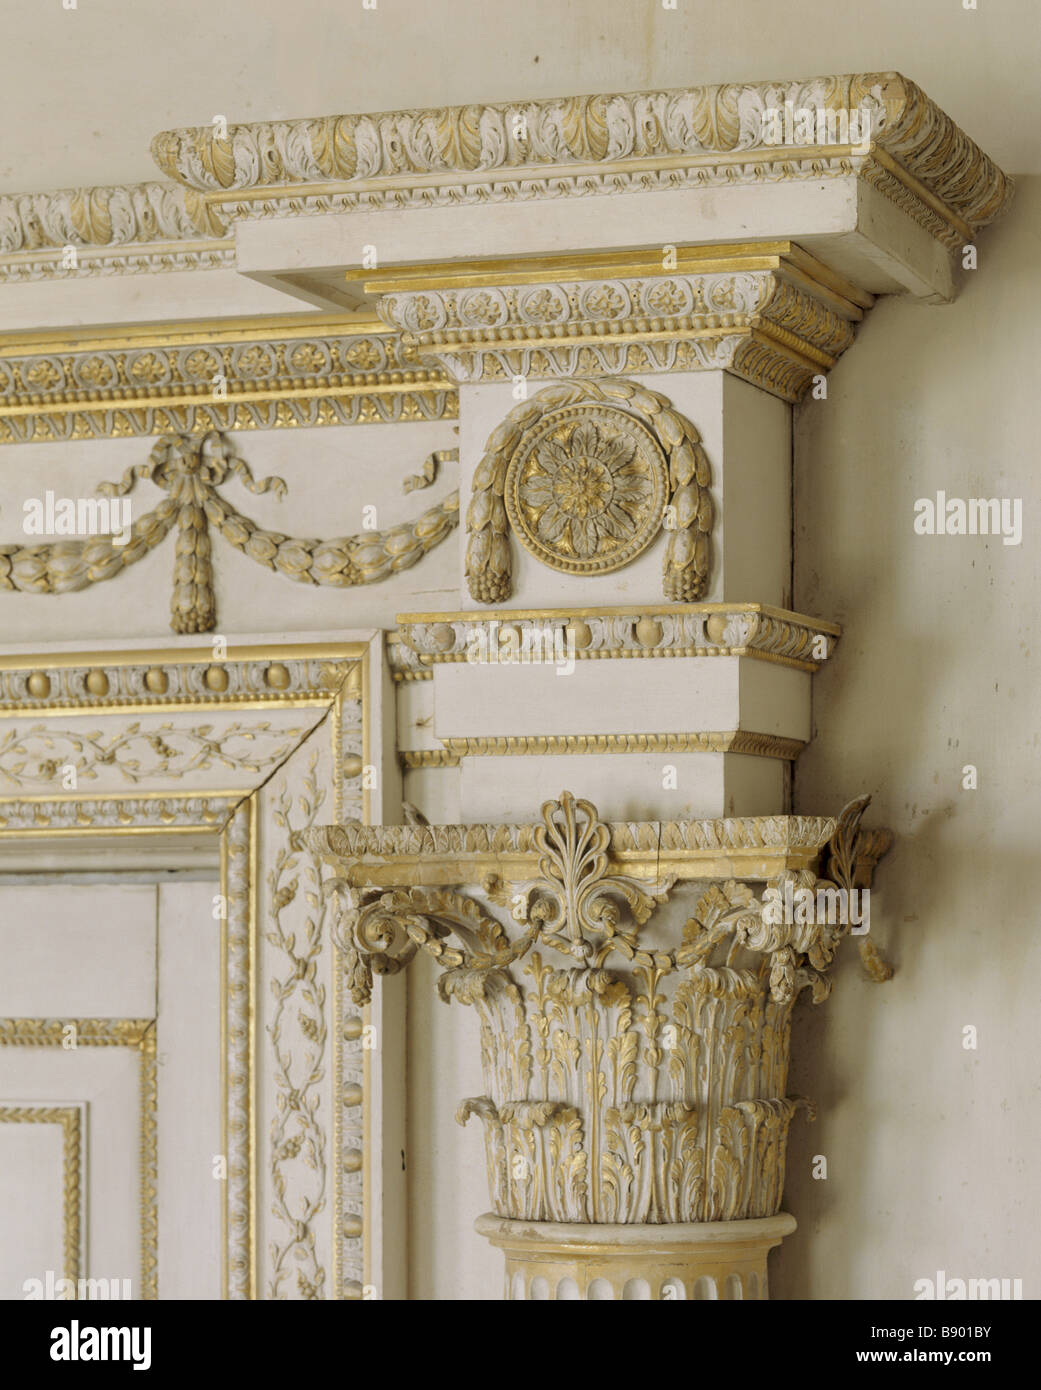 Detail of the North Door in The Saloon at Uppark showing ornate carving and gilding - Stock Image